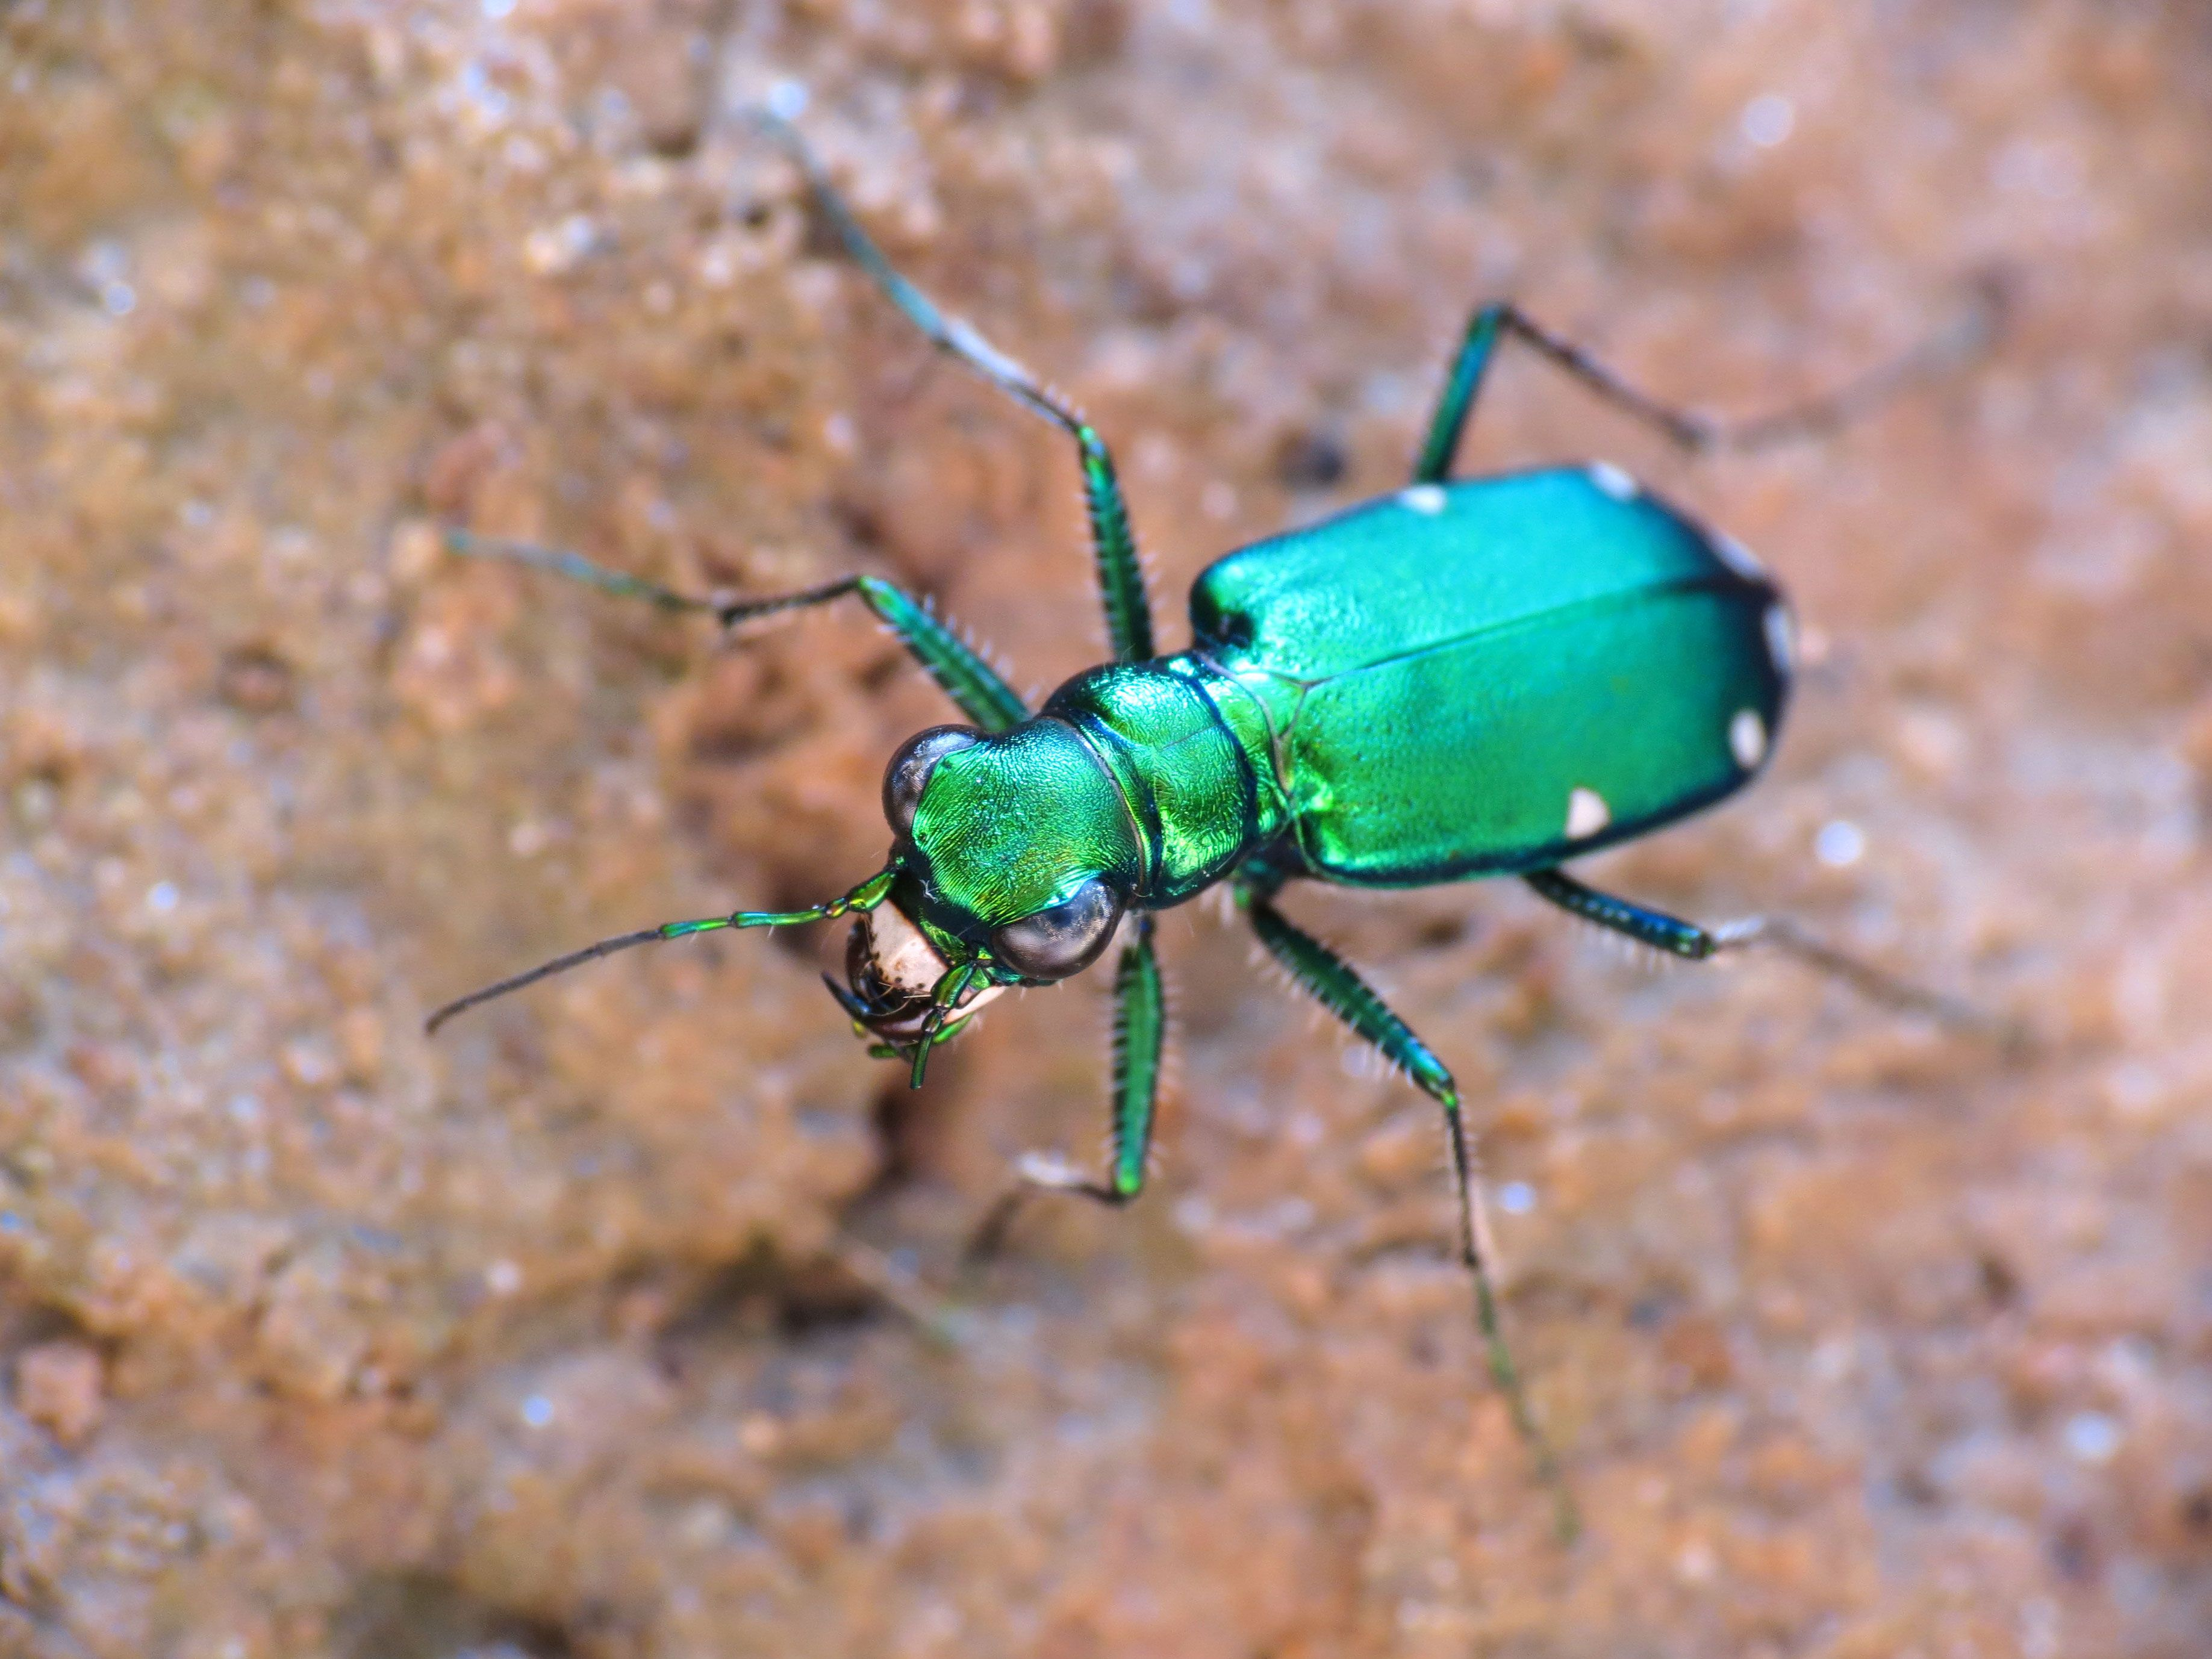 A spotted tiger beetle climbing up bark.